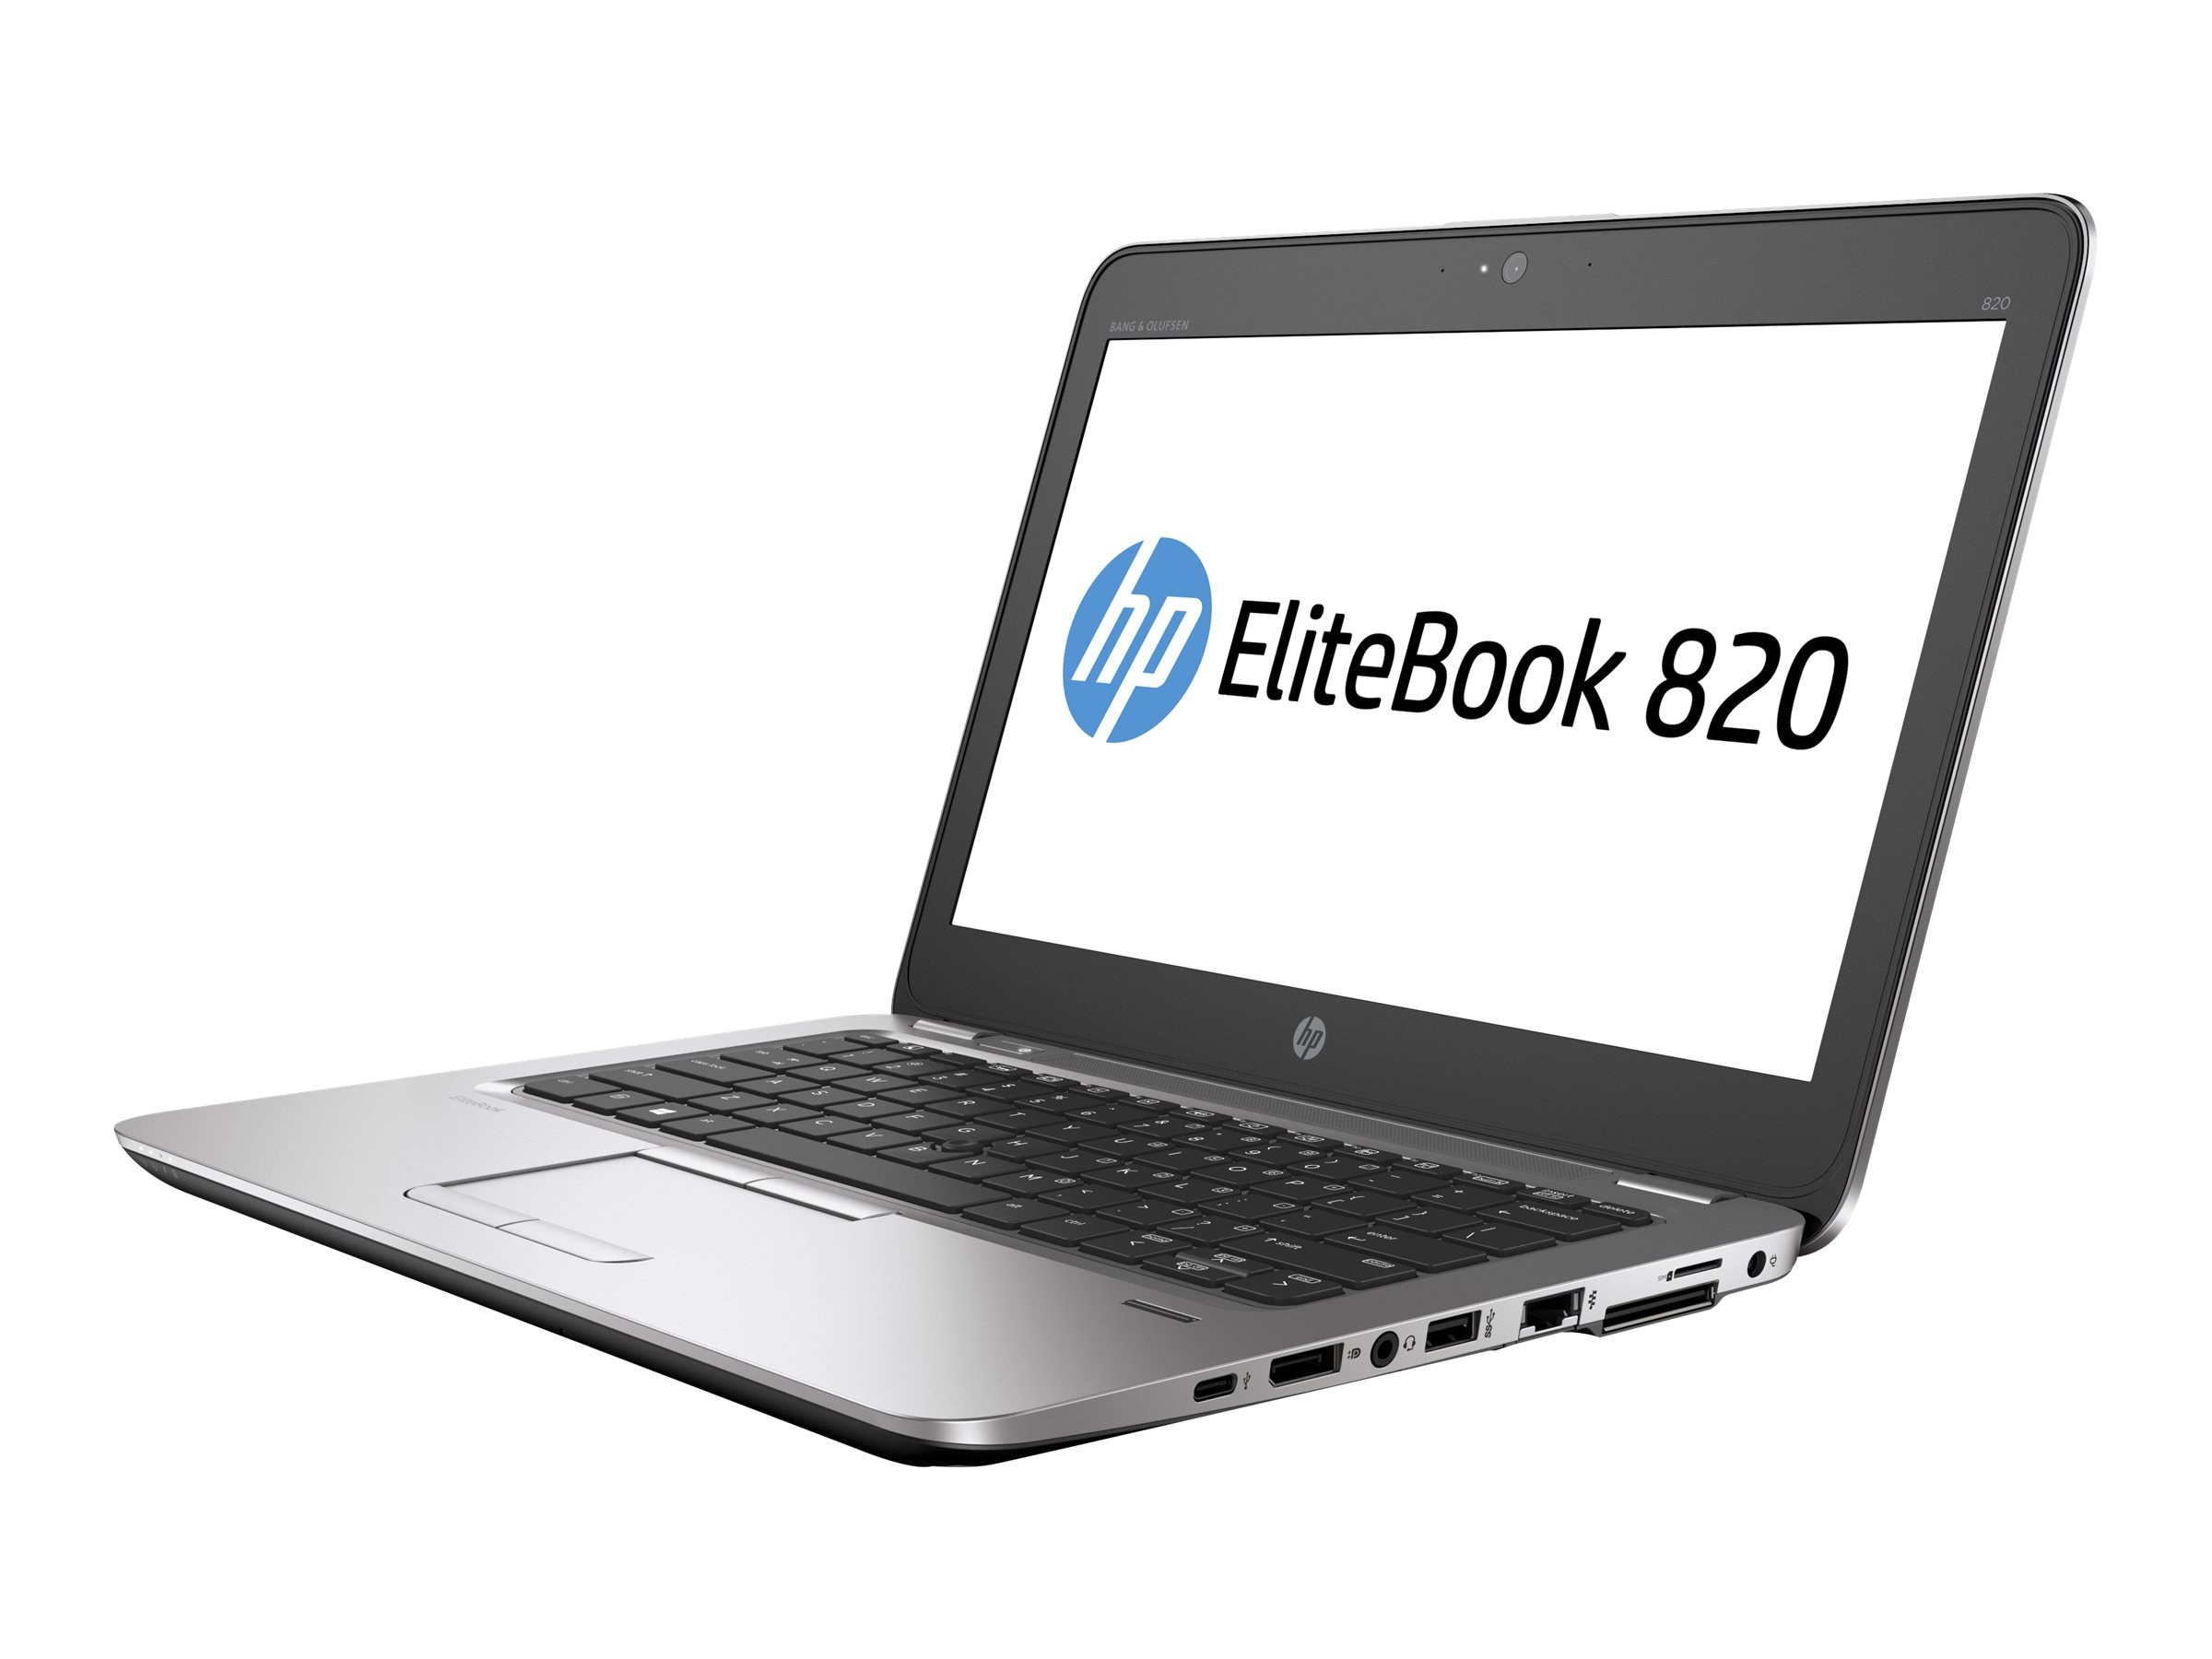 HP EliteBook 820 G3 2.4GHz Core i5 12.5in display, T7N76AW#ABA